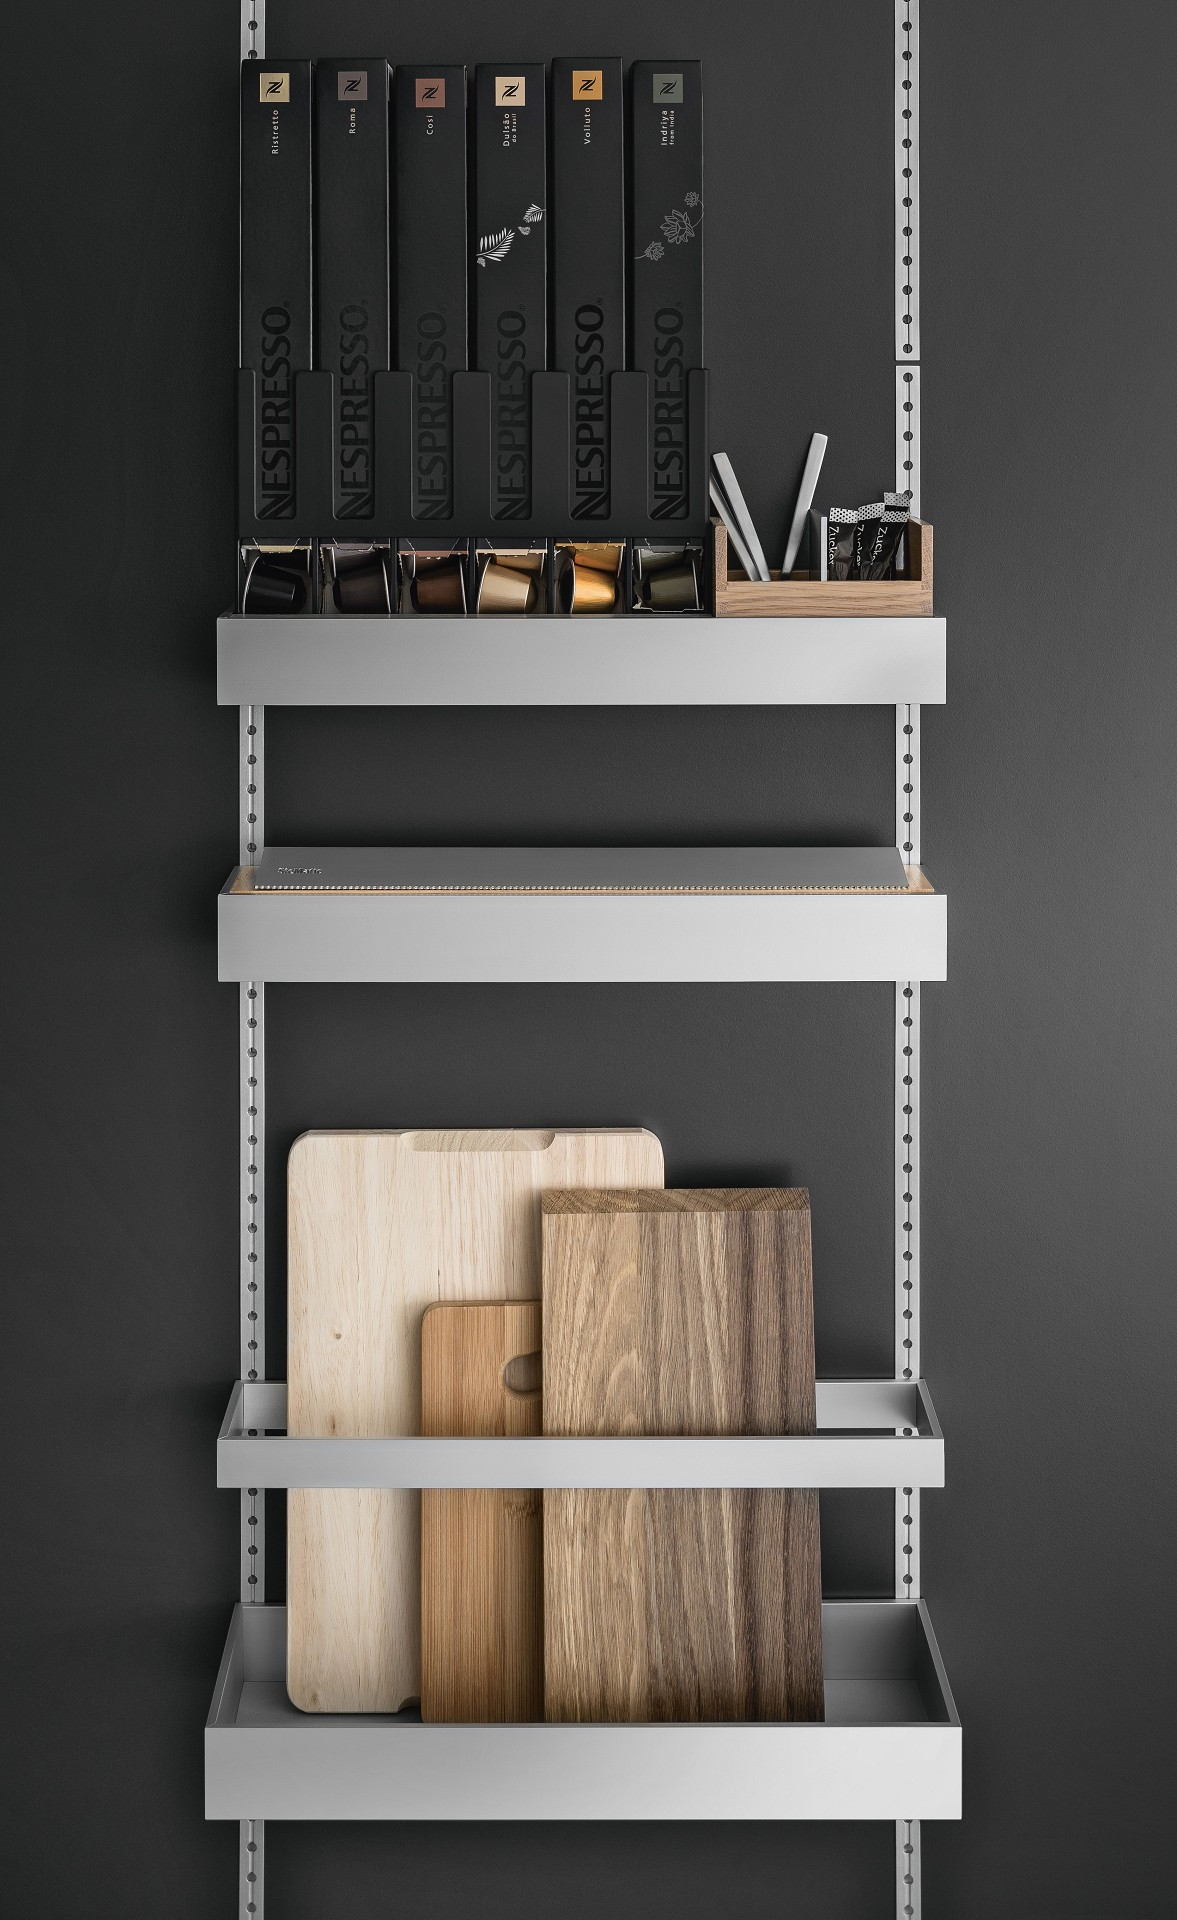 Coffee capsule organizer, foil roll tray and cutting board holder from the SieMatic MultiMatic interior accessories system